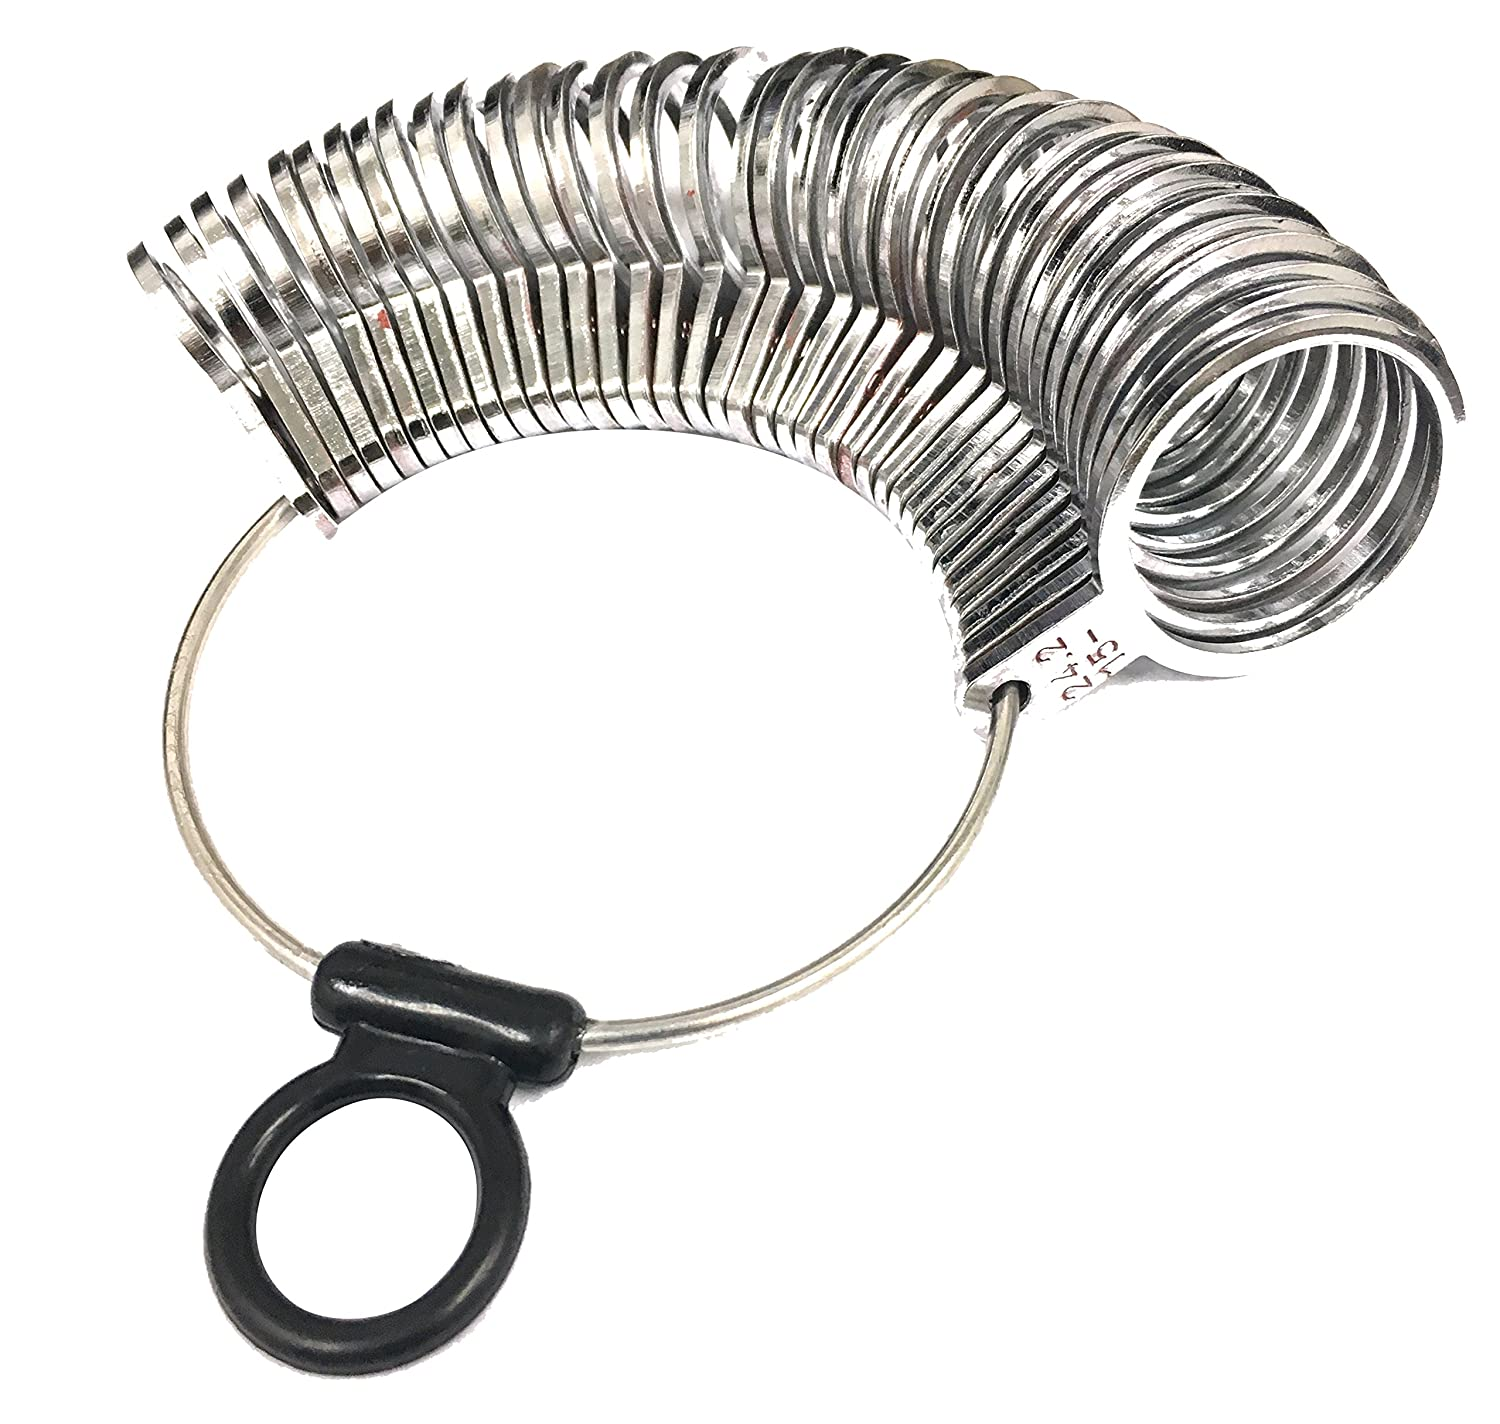 Ring Sizer - 36 Piece Accurate Metal Ring Sizer Jewelers Toy Store JTS